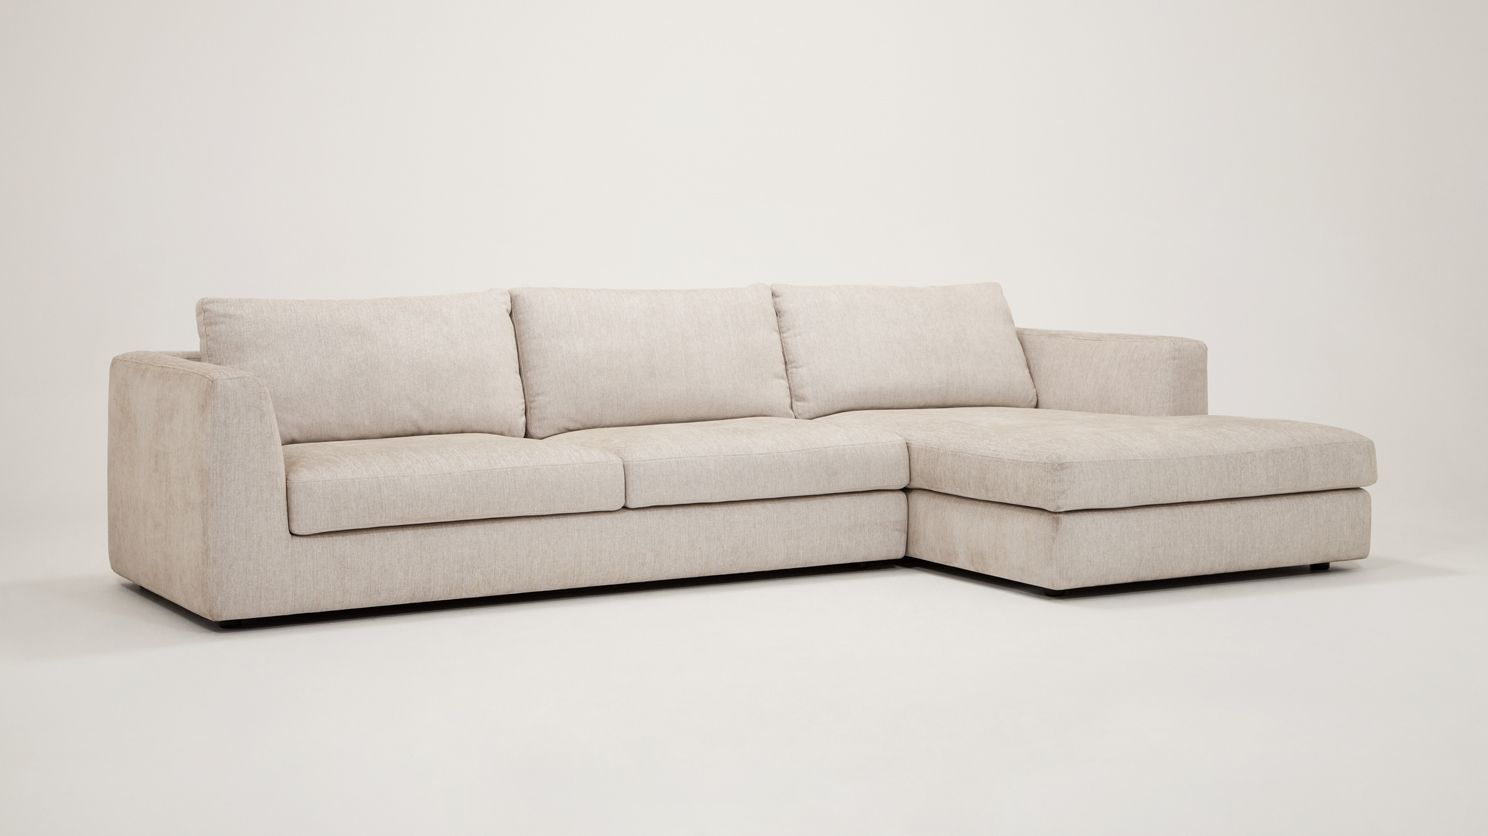 Cello 2 Piece Sectional Sofa With Chaise Sectional Sofa With